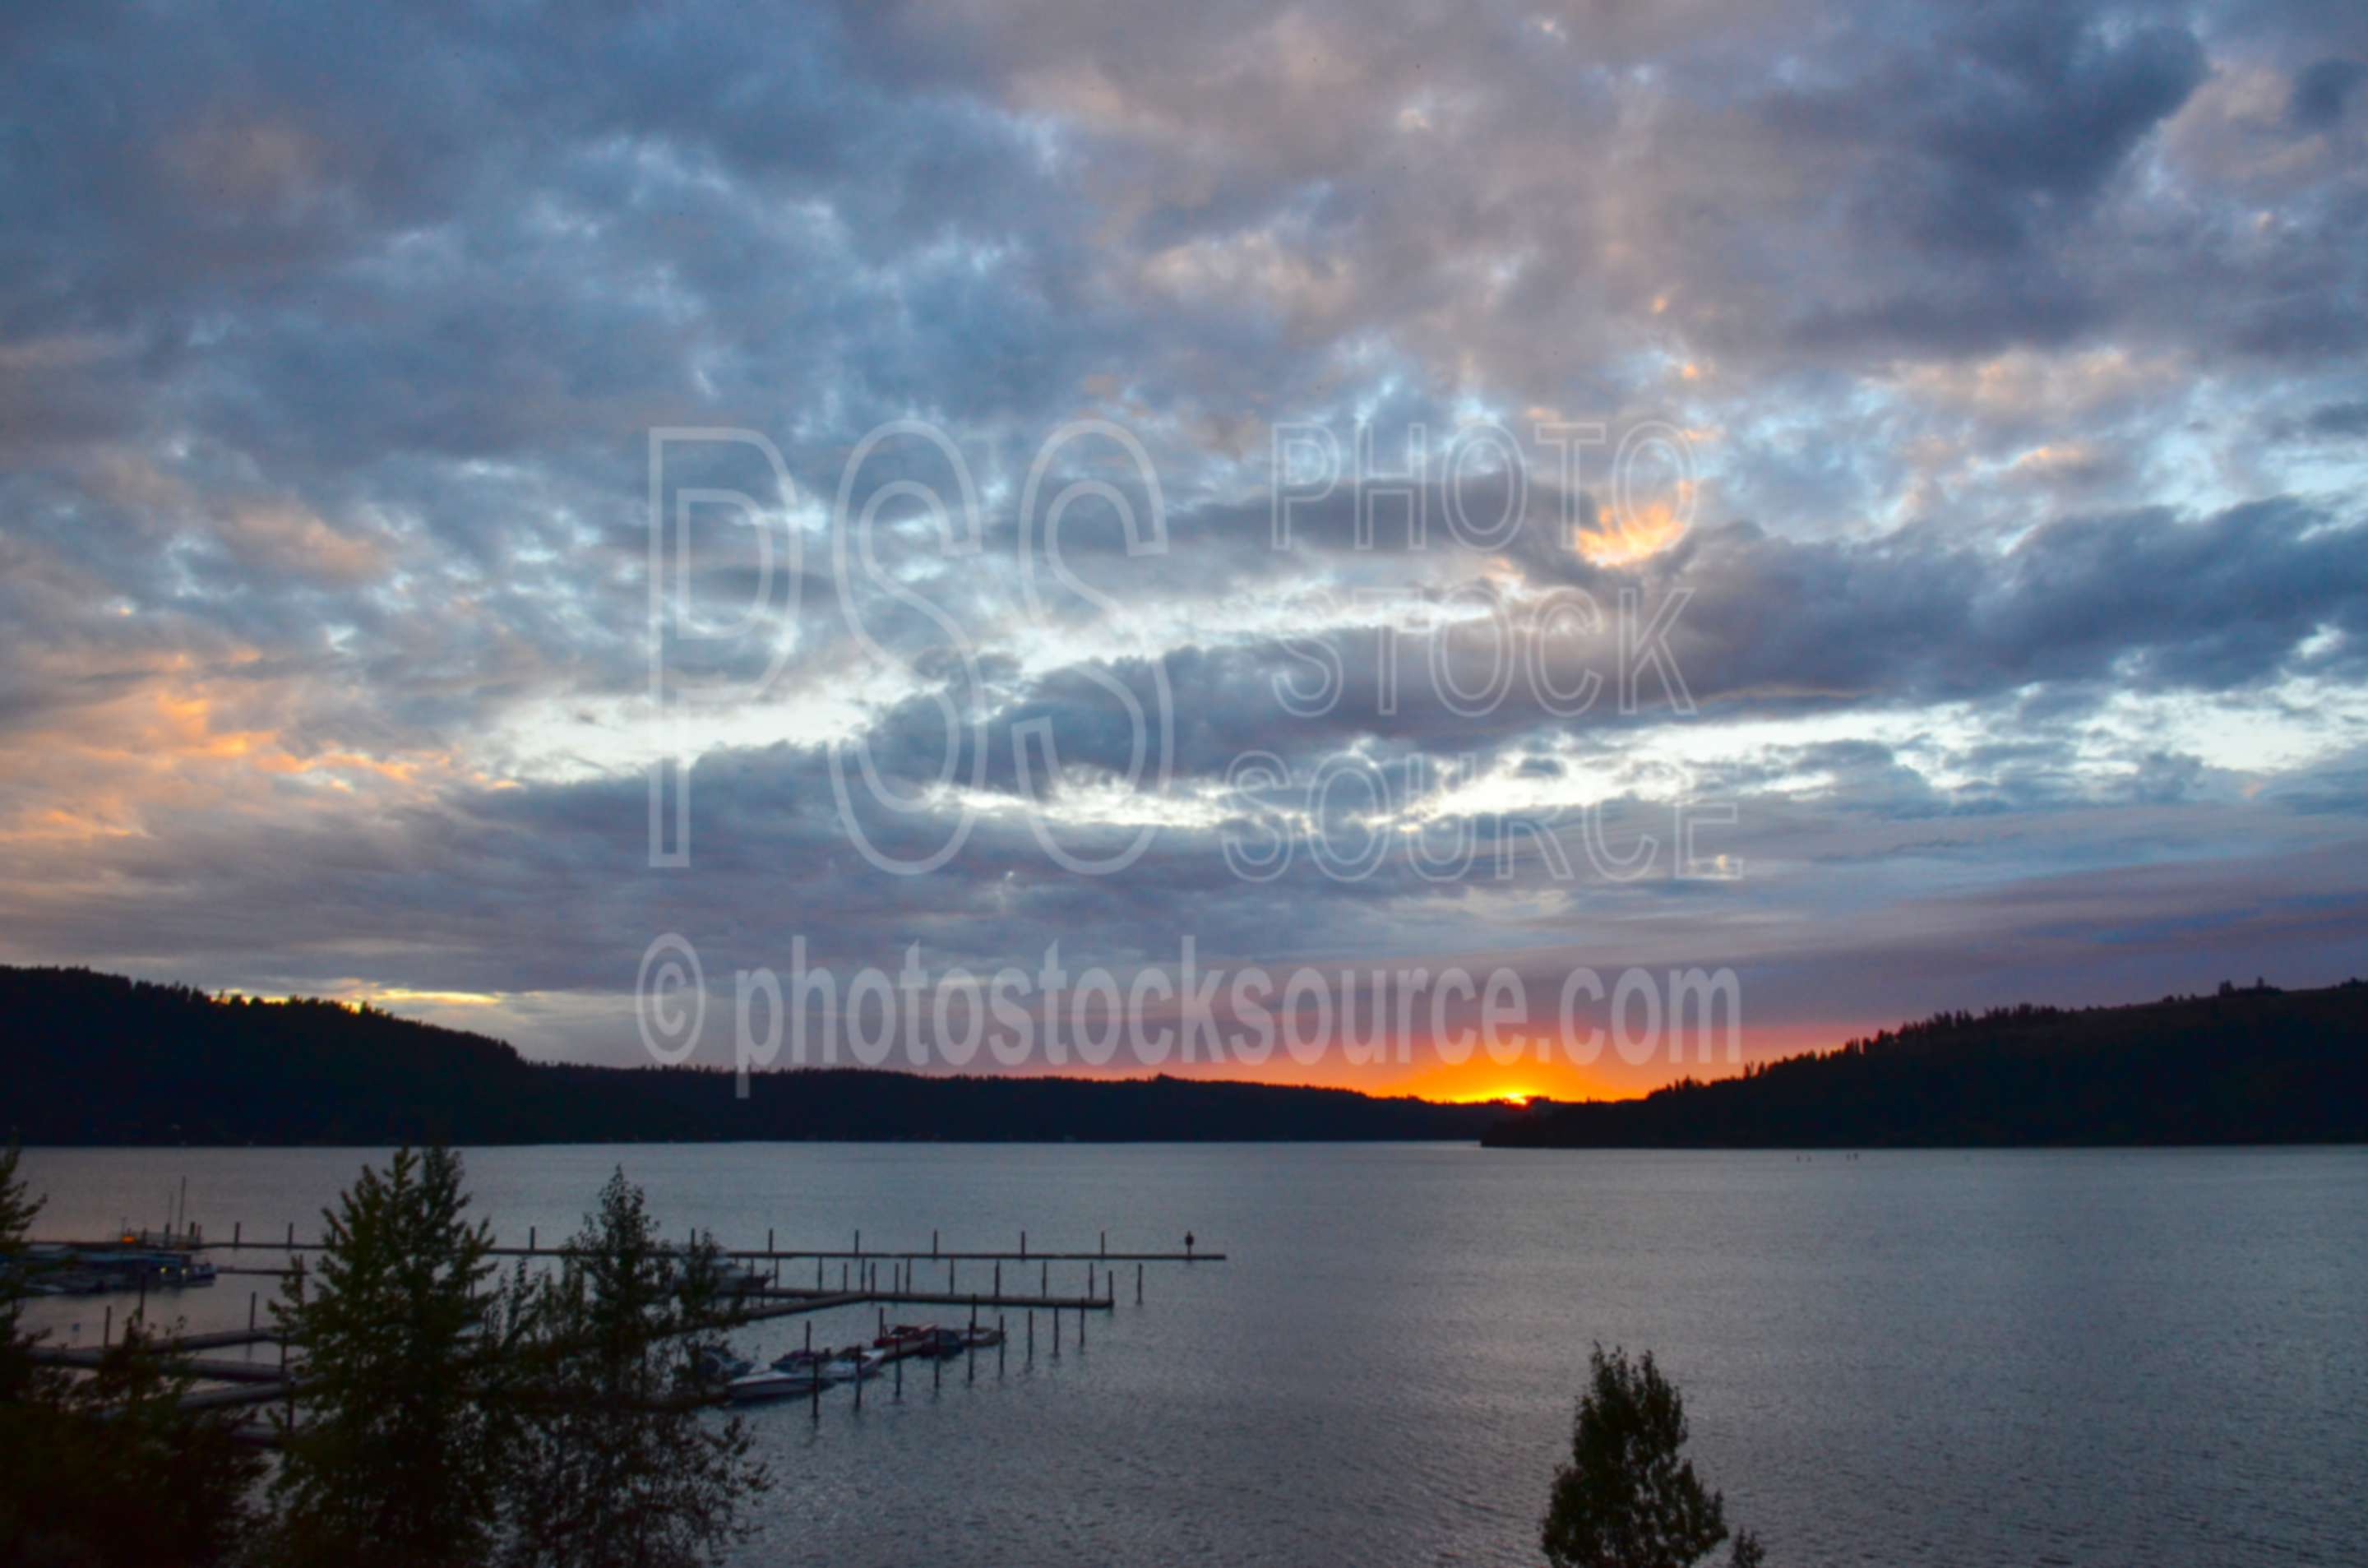 Docks on Lake Coeur D'Alene,water,lake,docks,boats,harbor,sunset